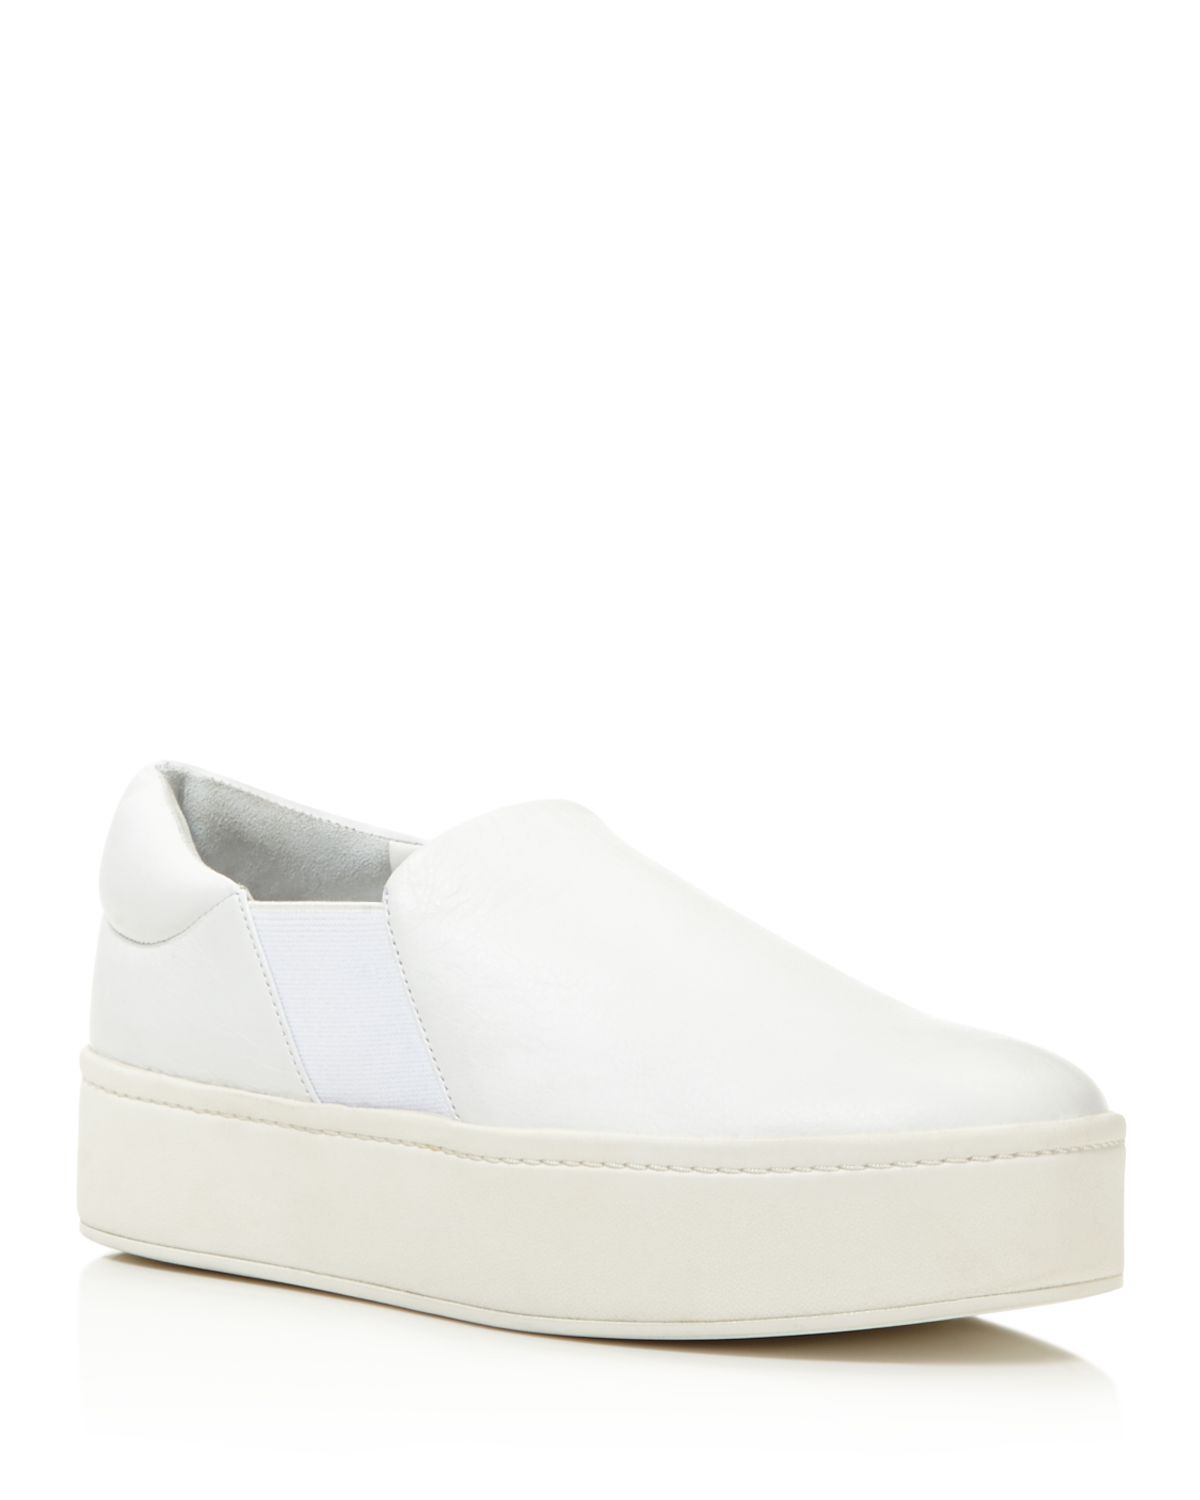 Vince Warren Leather Platform Slip-On Sneakers